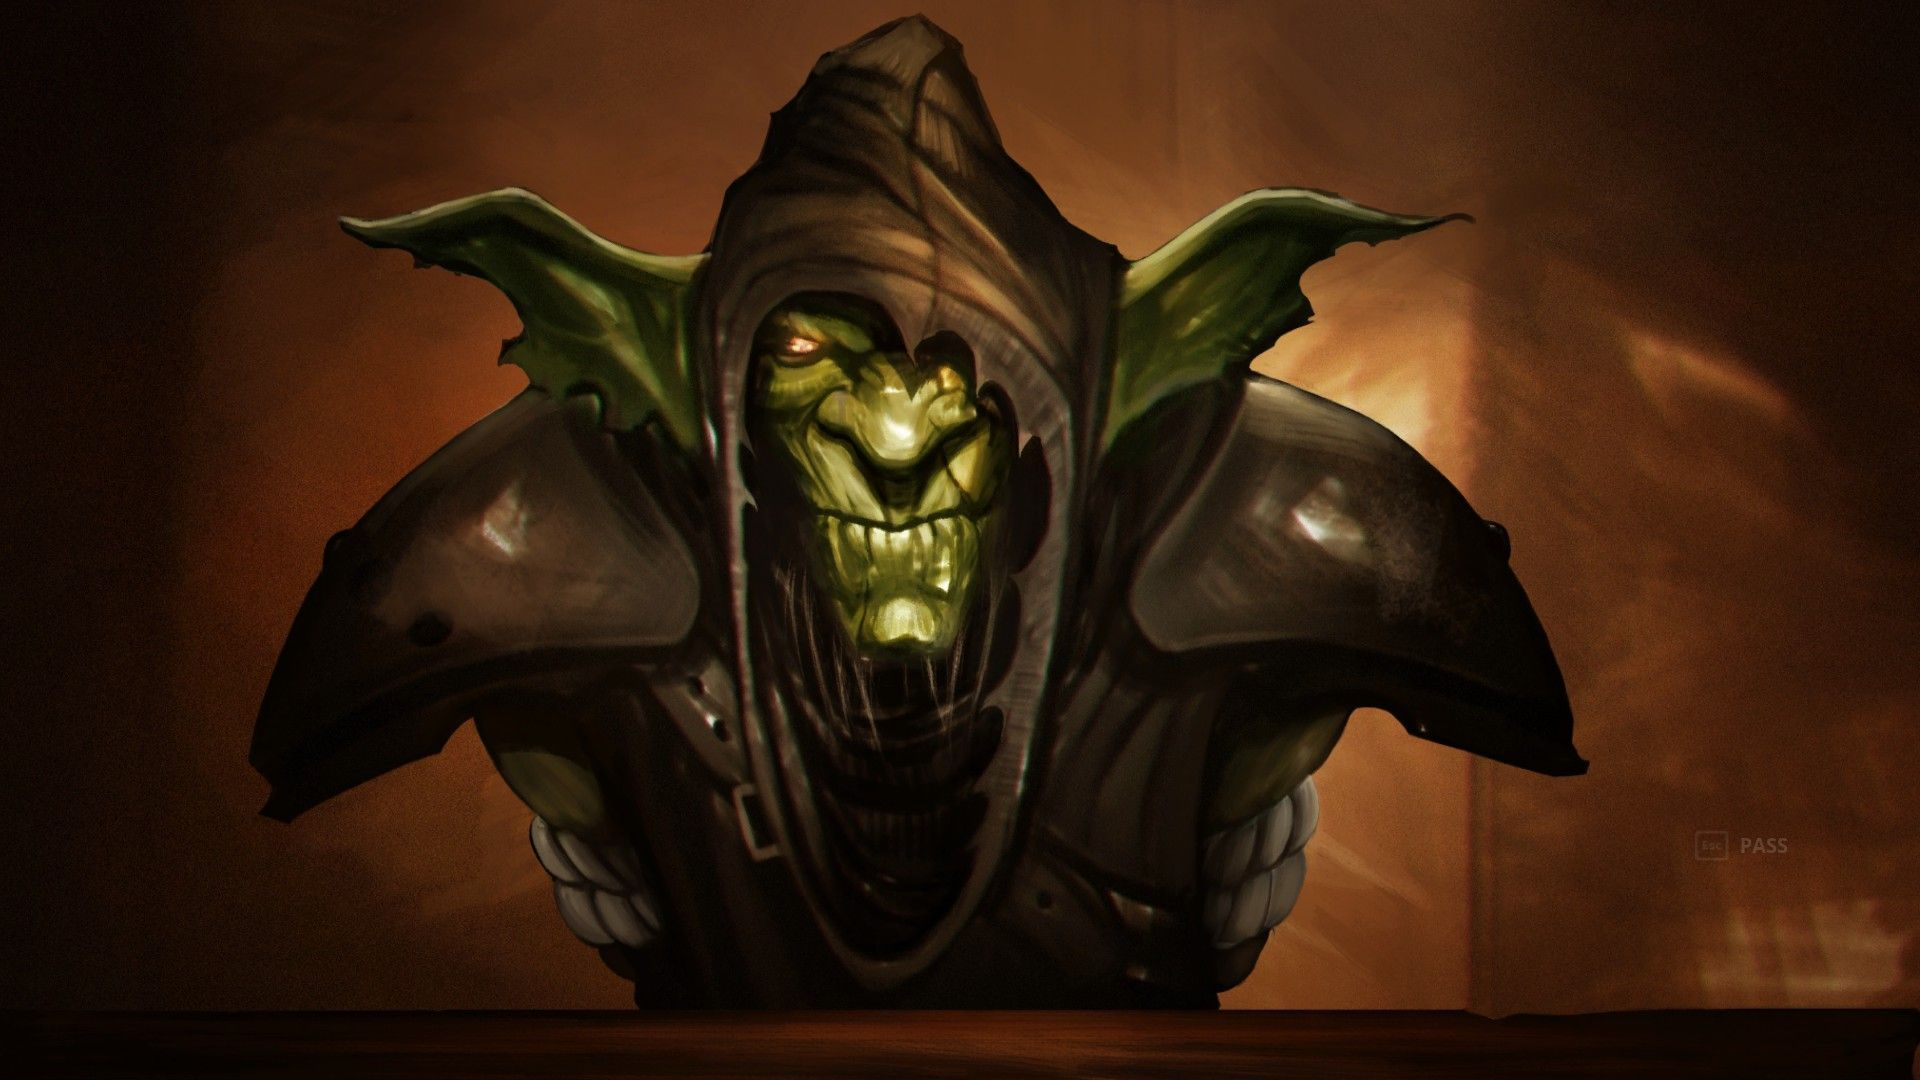 Styx Master Of Shadows Hd Wallpapers